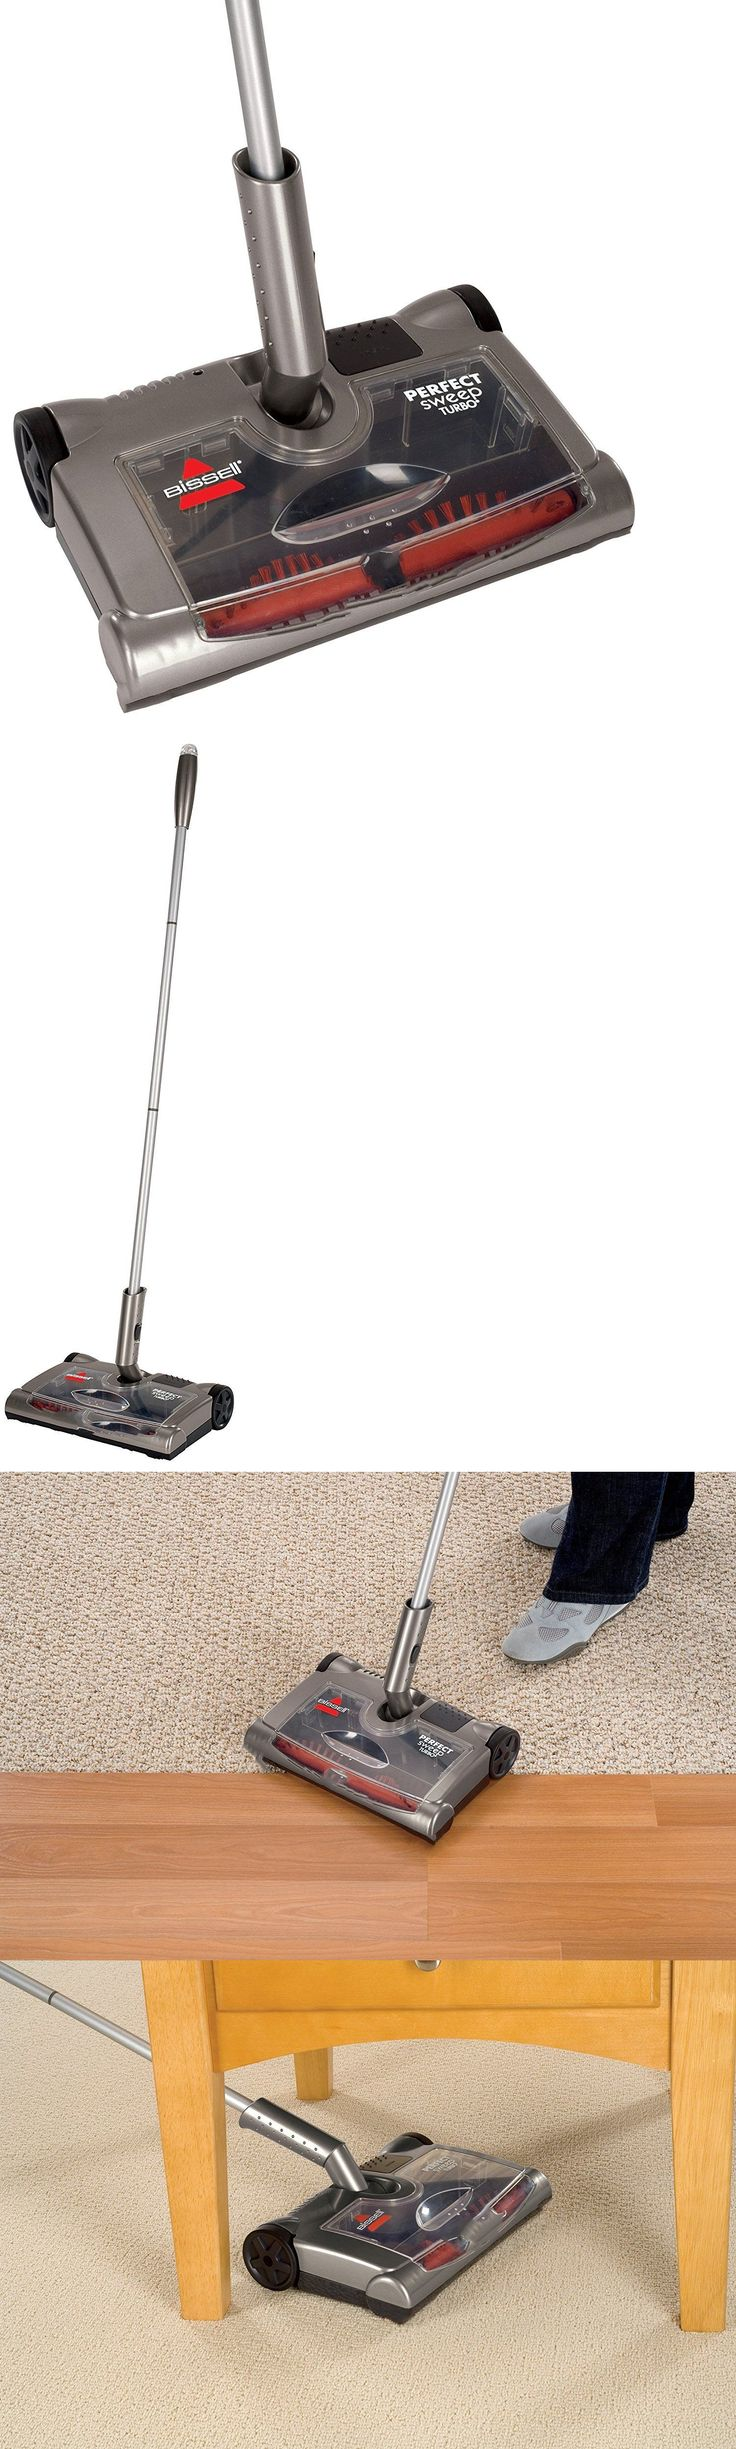 Carpet And Floor Sweepers 79657: New! Perfect Electric Floor Sweeper U2013 Home  Office Clean